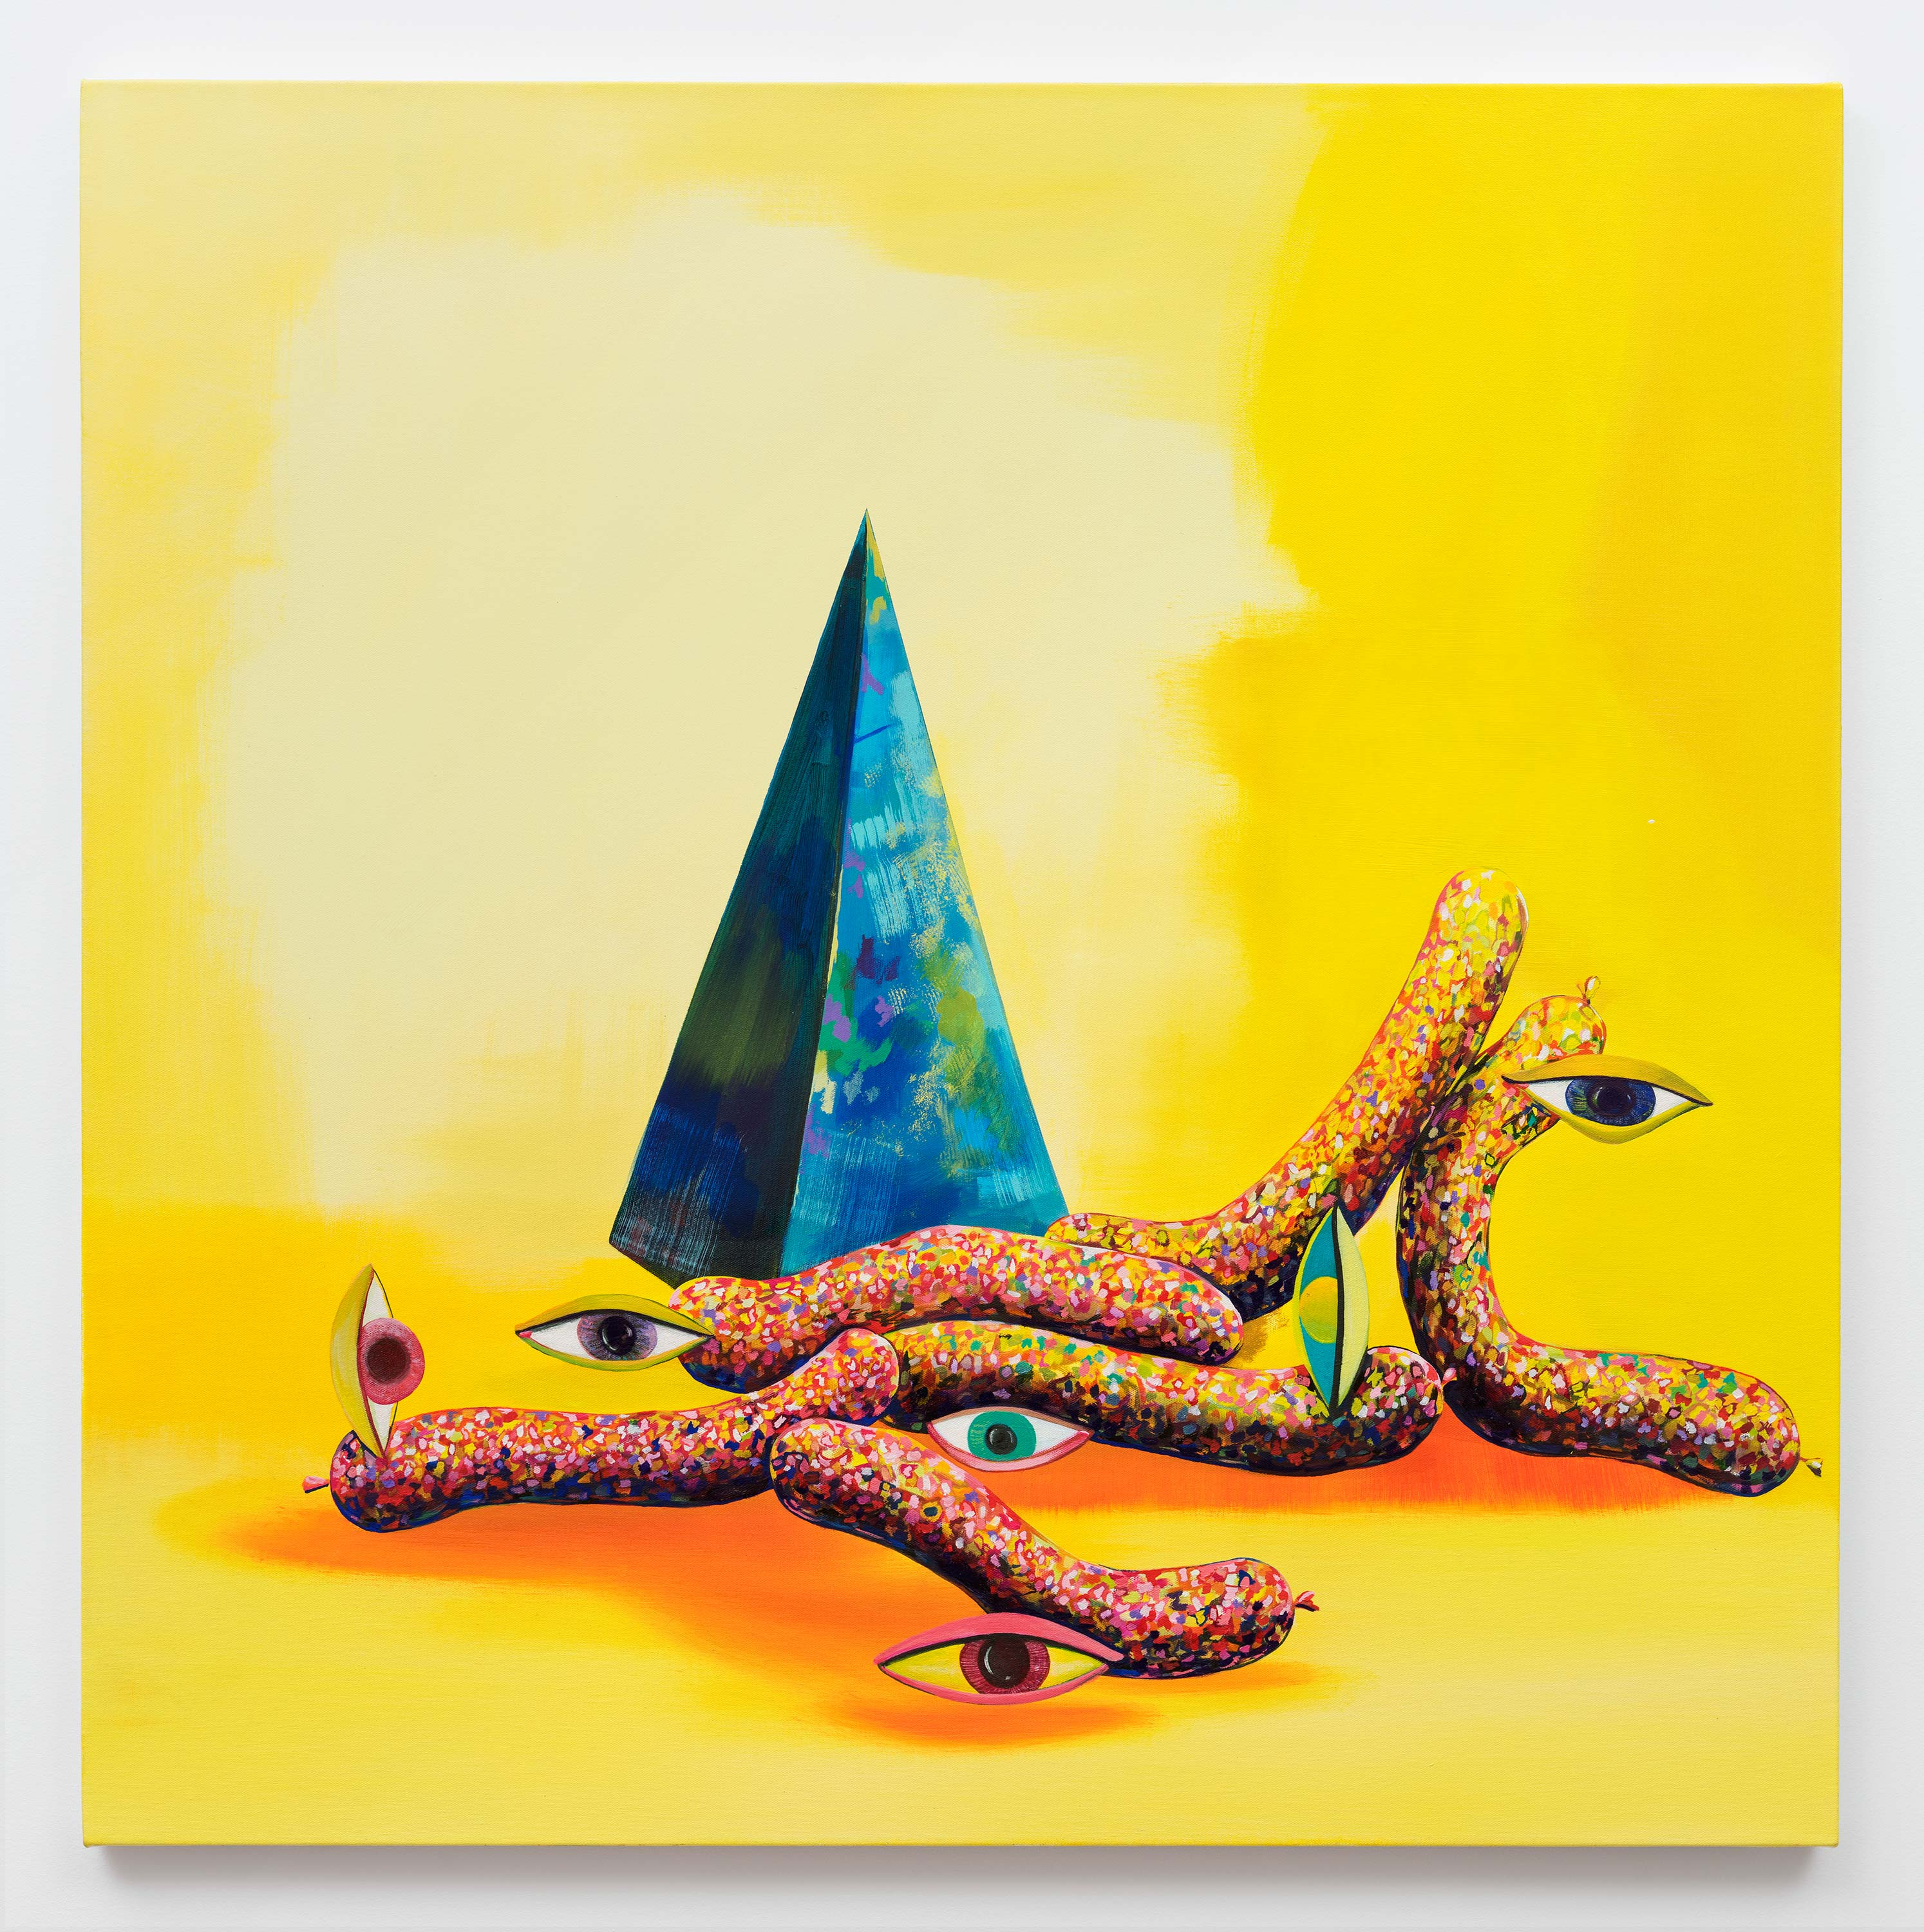 Paul Branca<br>Untitled, Sausage-yes, (Yellow)<br>2015<br>Oil on canvas<br>40 x 40 inches (101.6 x 101.6 cm)